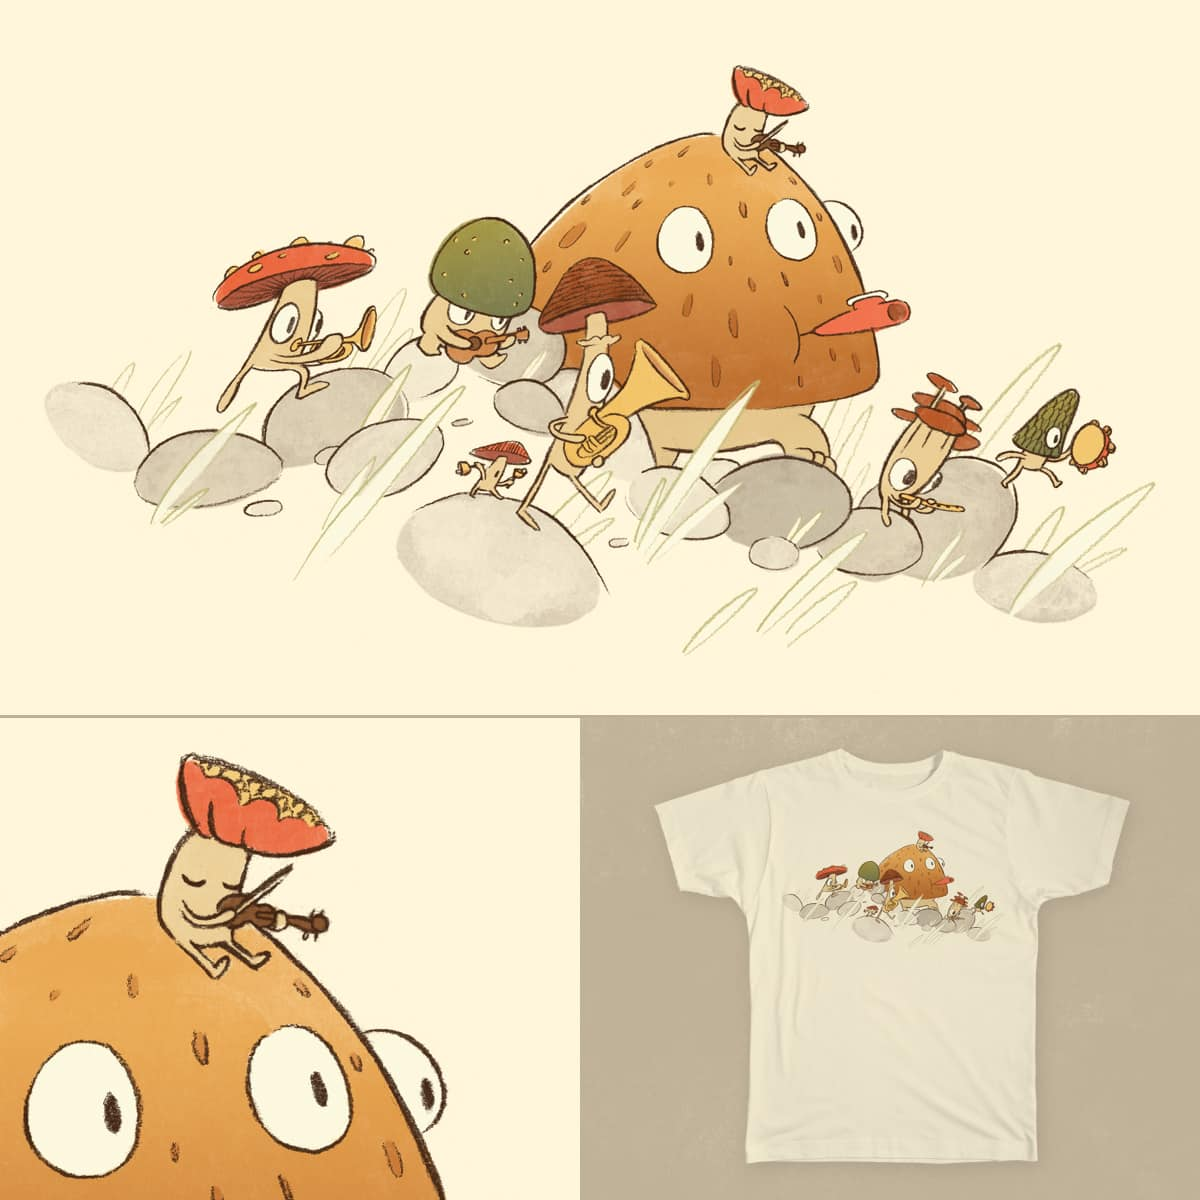 Mushroom Medley by JacobGerms on Threadless